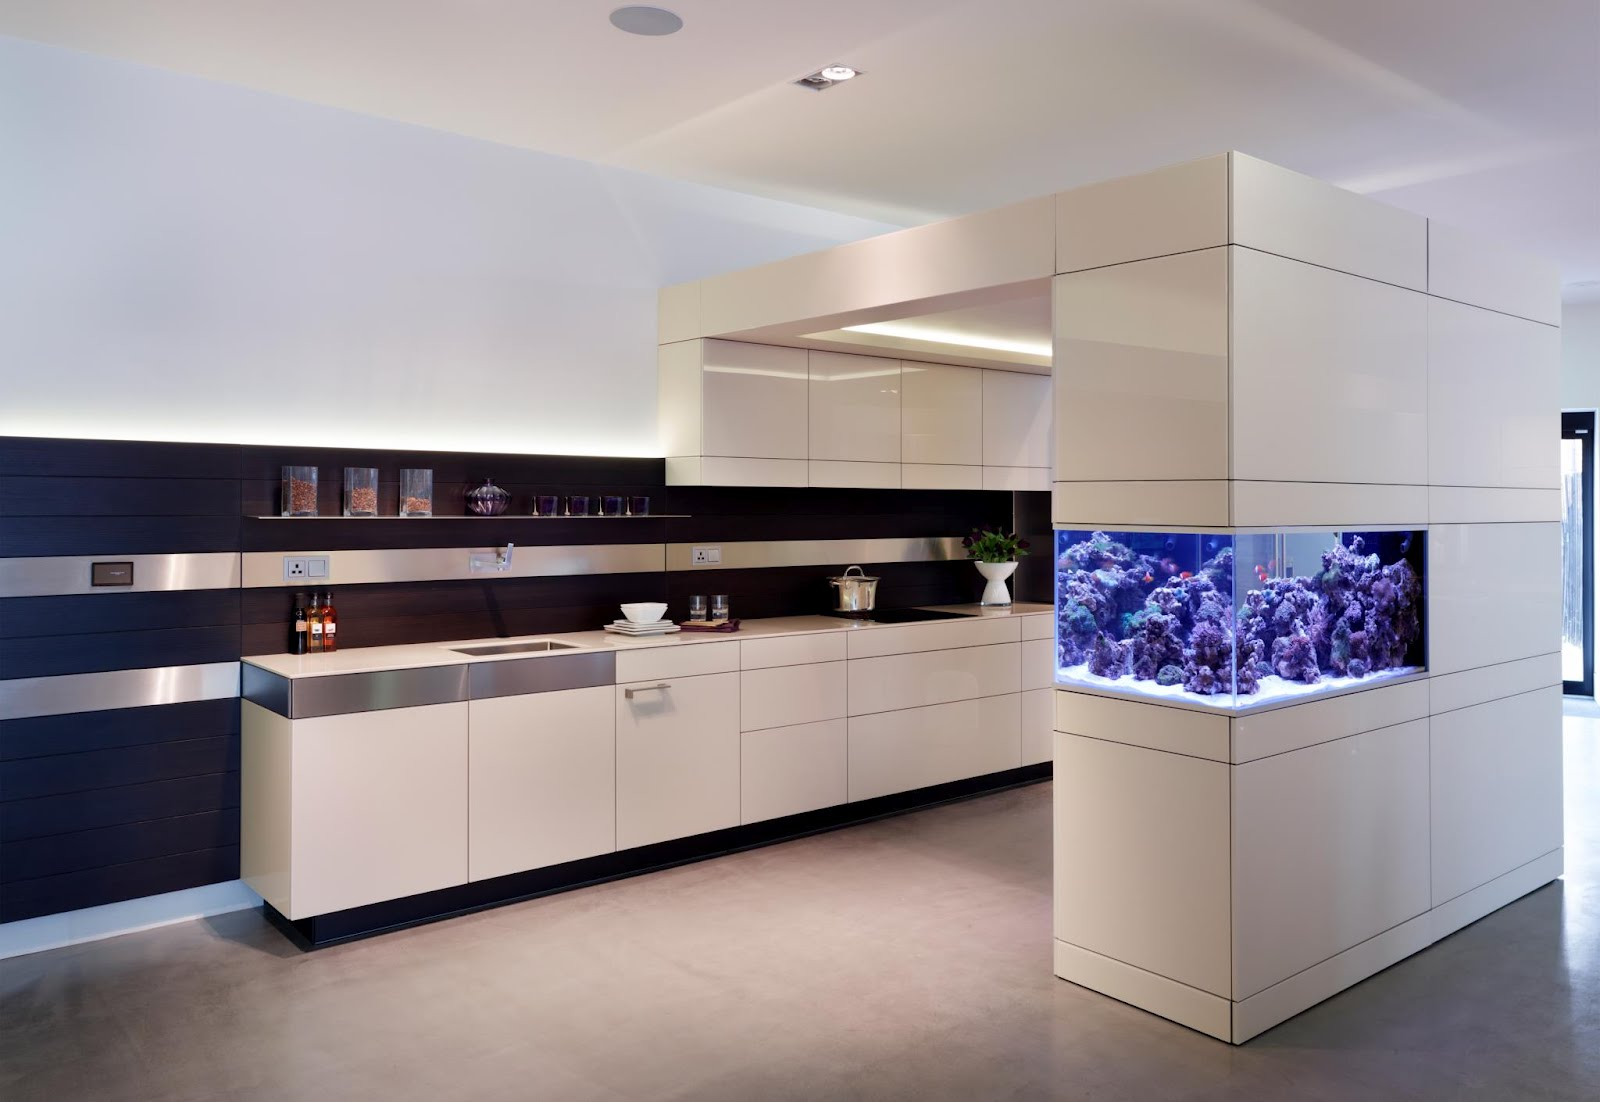 Fish tank in kitchen - If It S Hip It S Here Archives No Room For An Aquarium Think Again 20 Unusual Places In Your Home For Fish Tanks